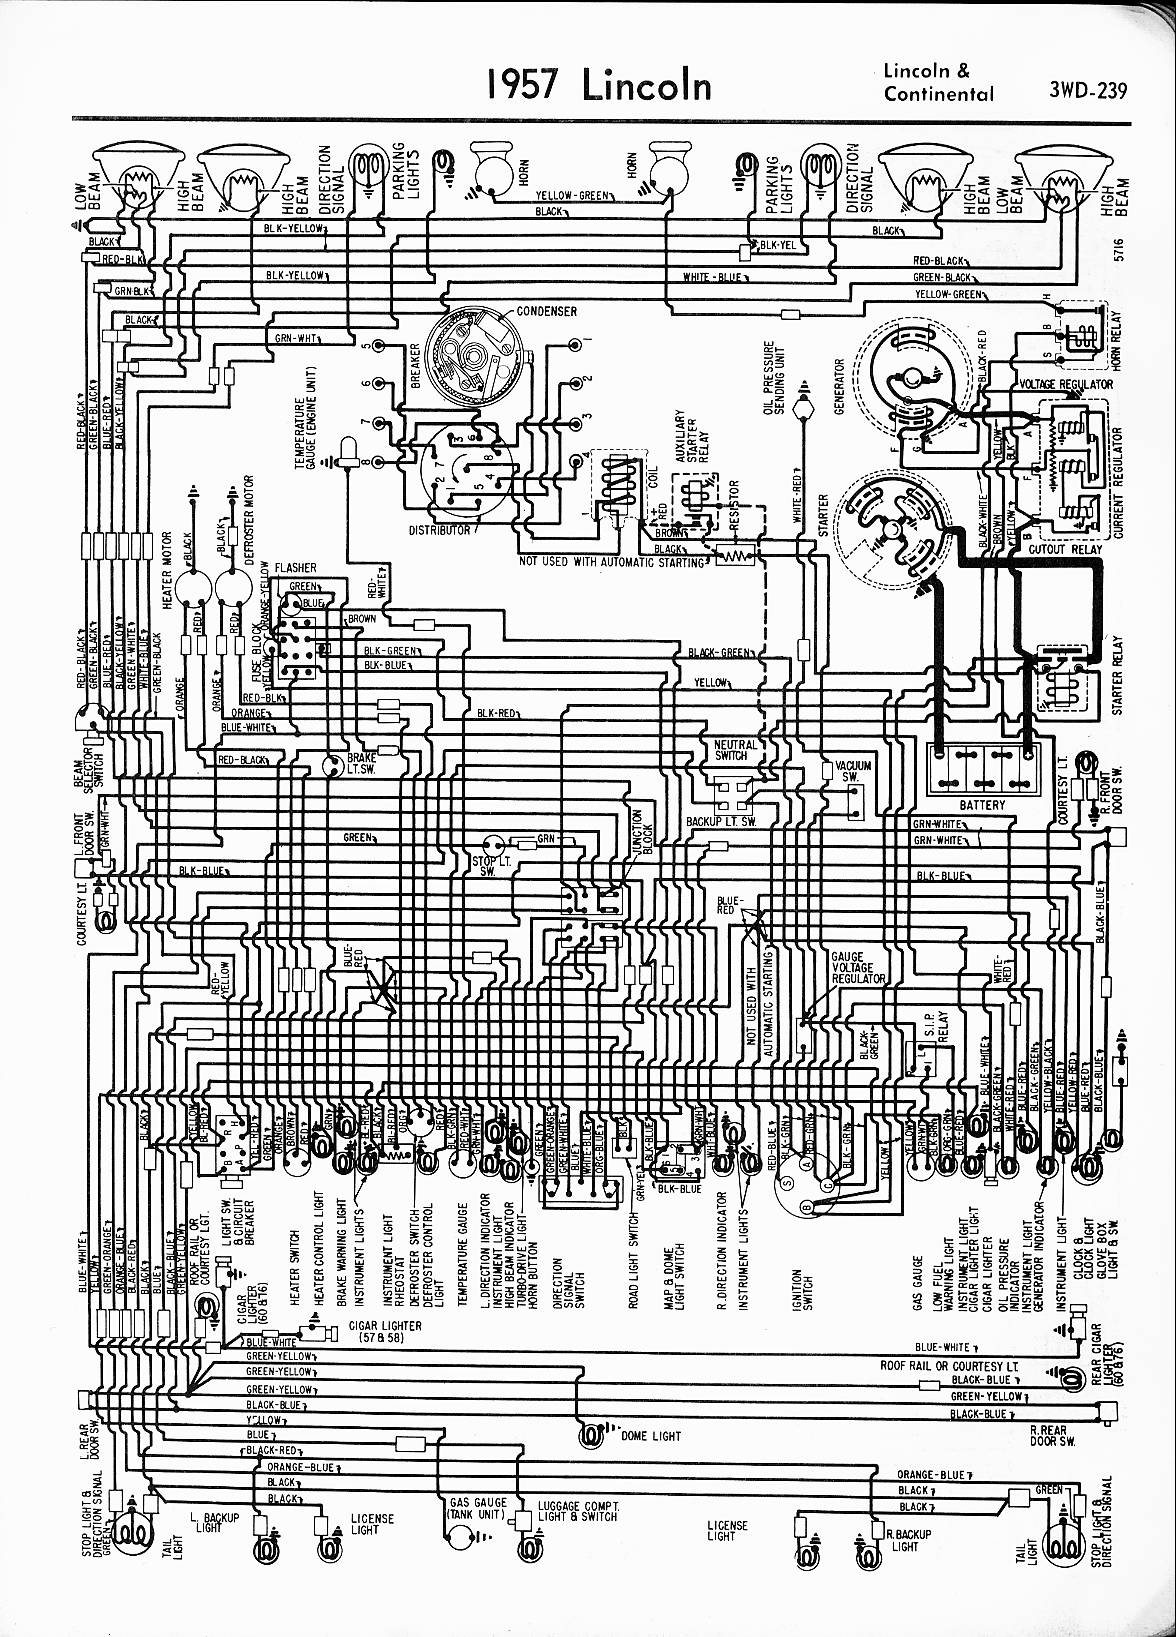 Wiring Diagrams 1984 Lincoln Get Free Image About Wiring Diagram